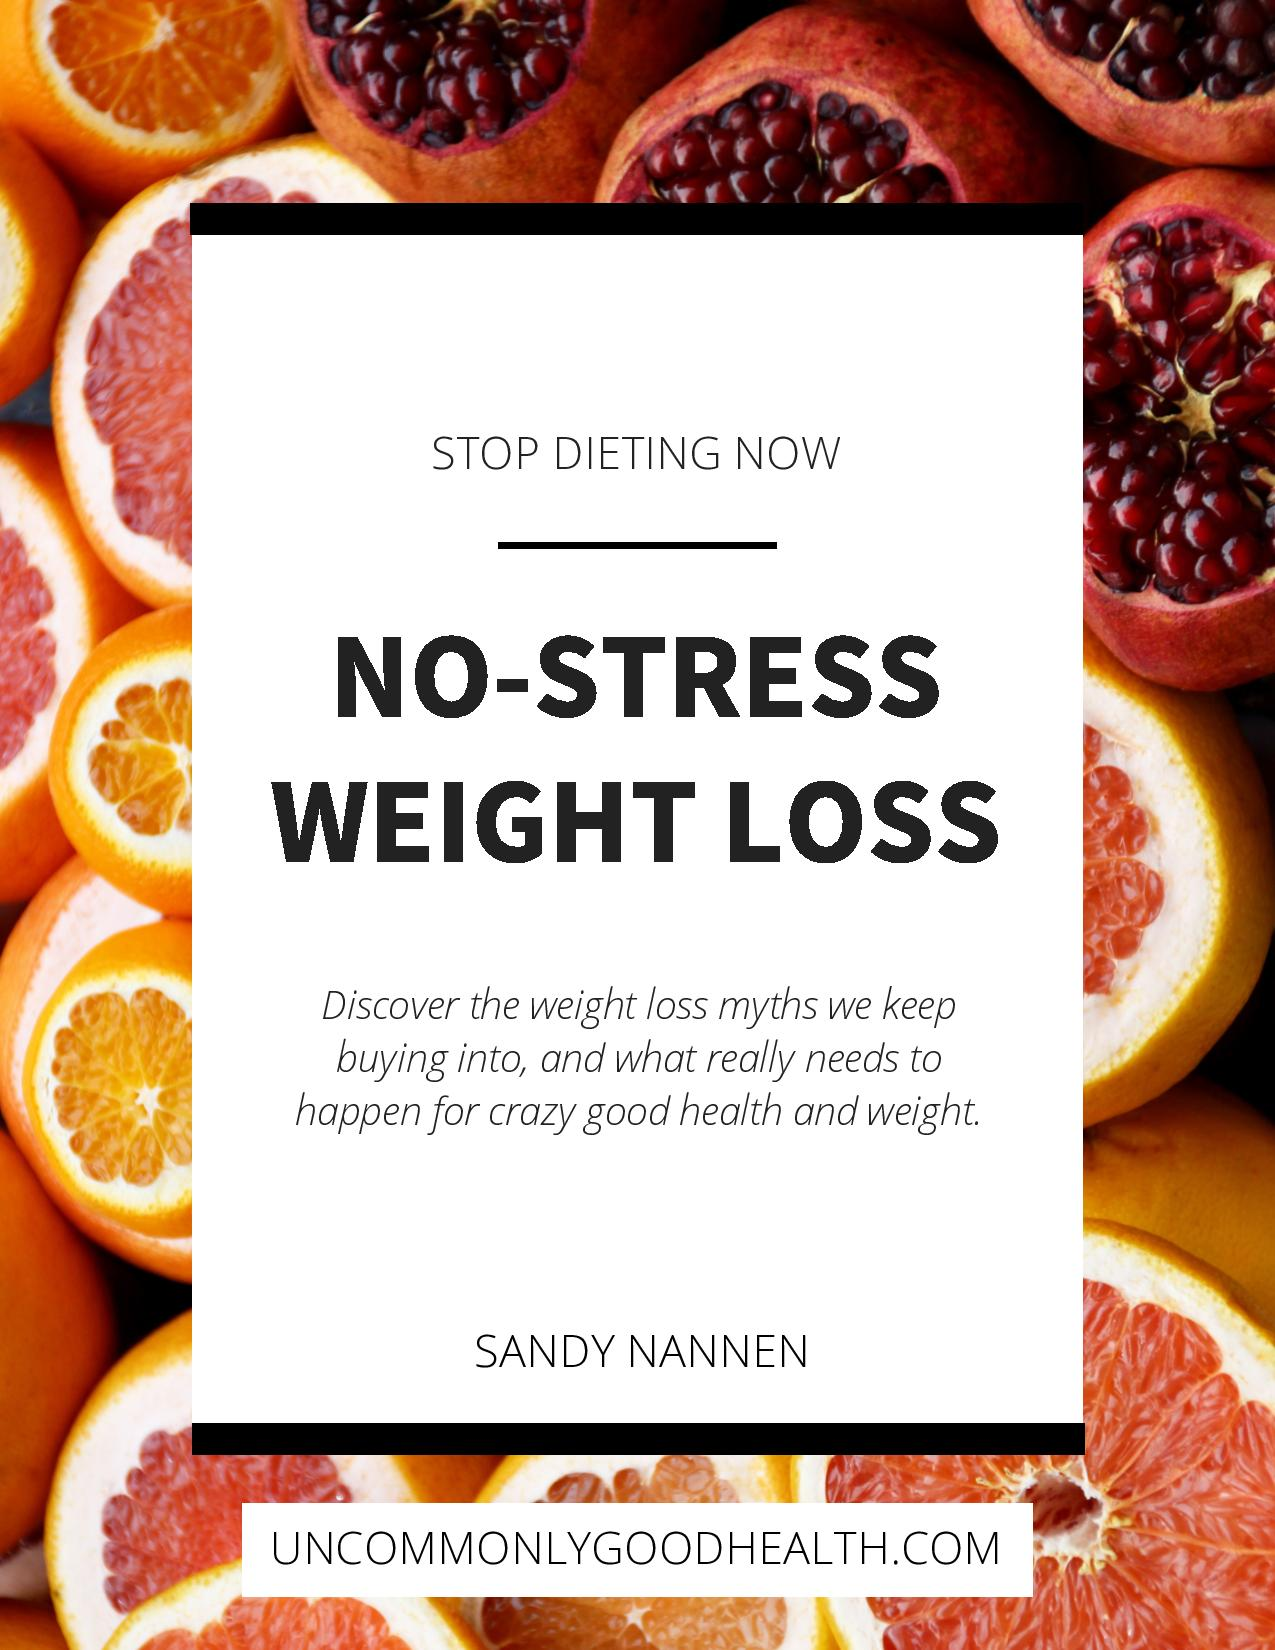 1_Covers_ No-Stress Weight Loss by Sandy Nannen (dragged)-page-001.jpg